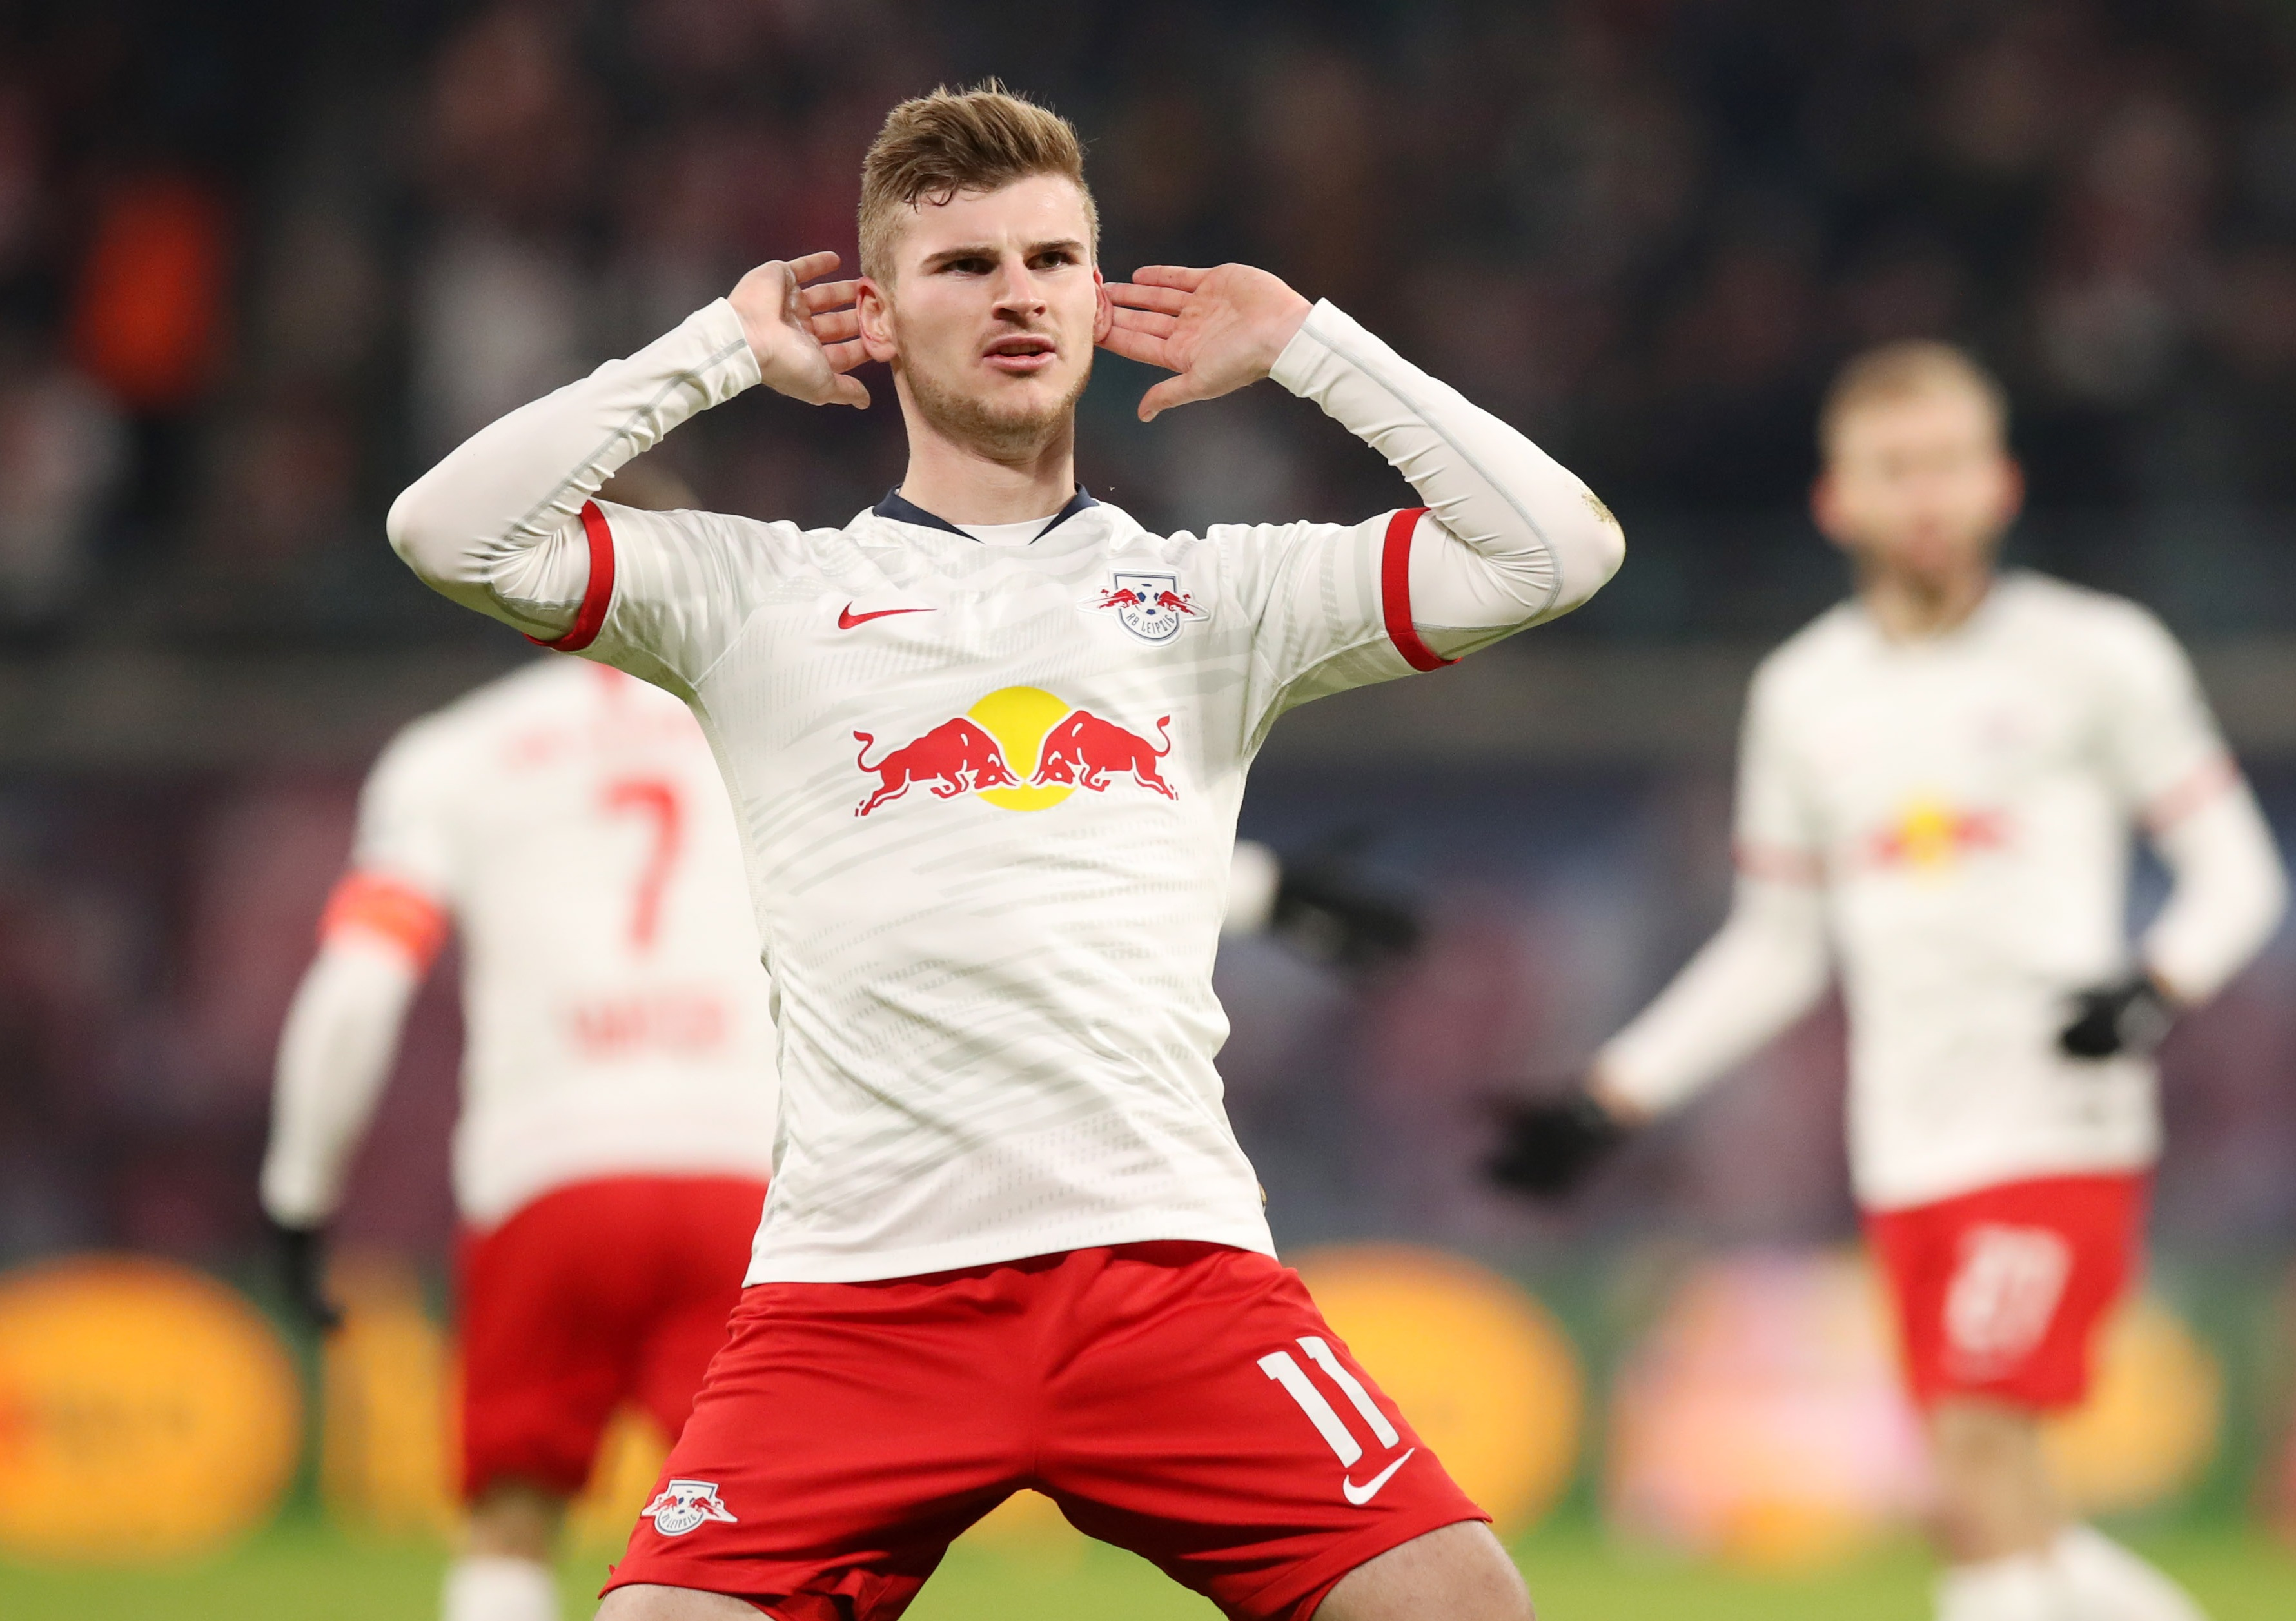 Timo Werner I Think I Have The Potential To Play For A Big Team